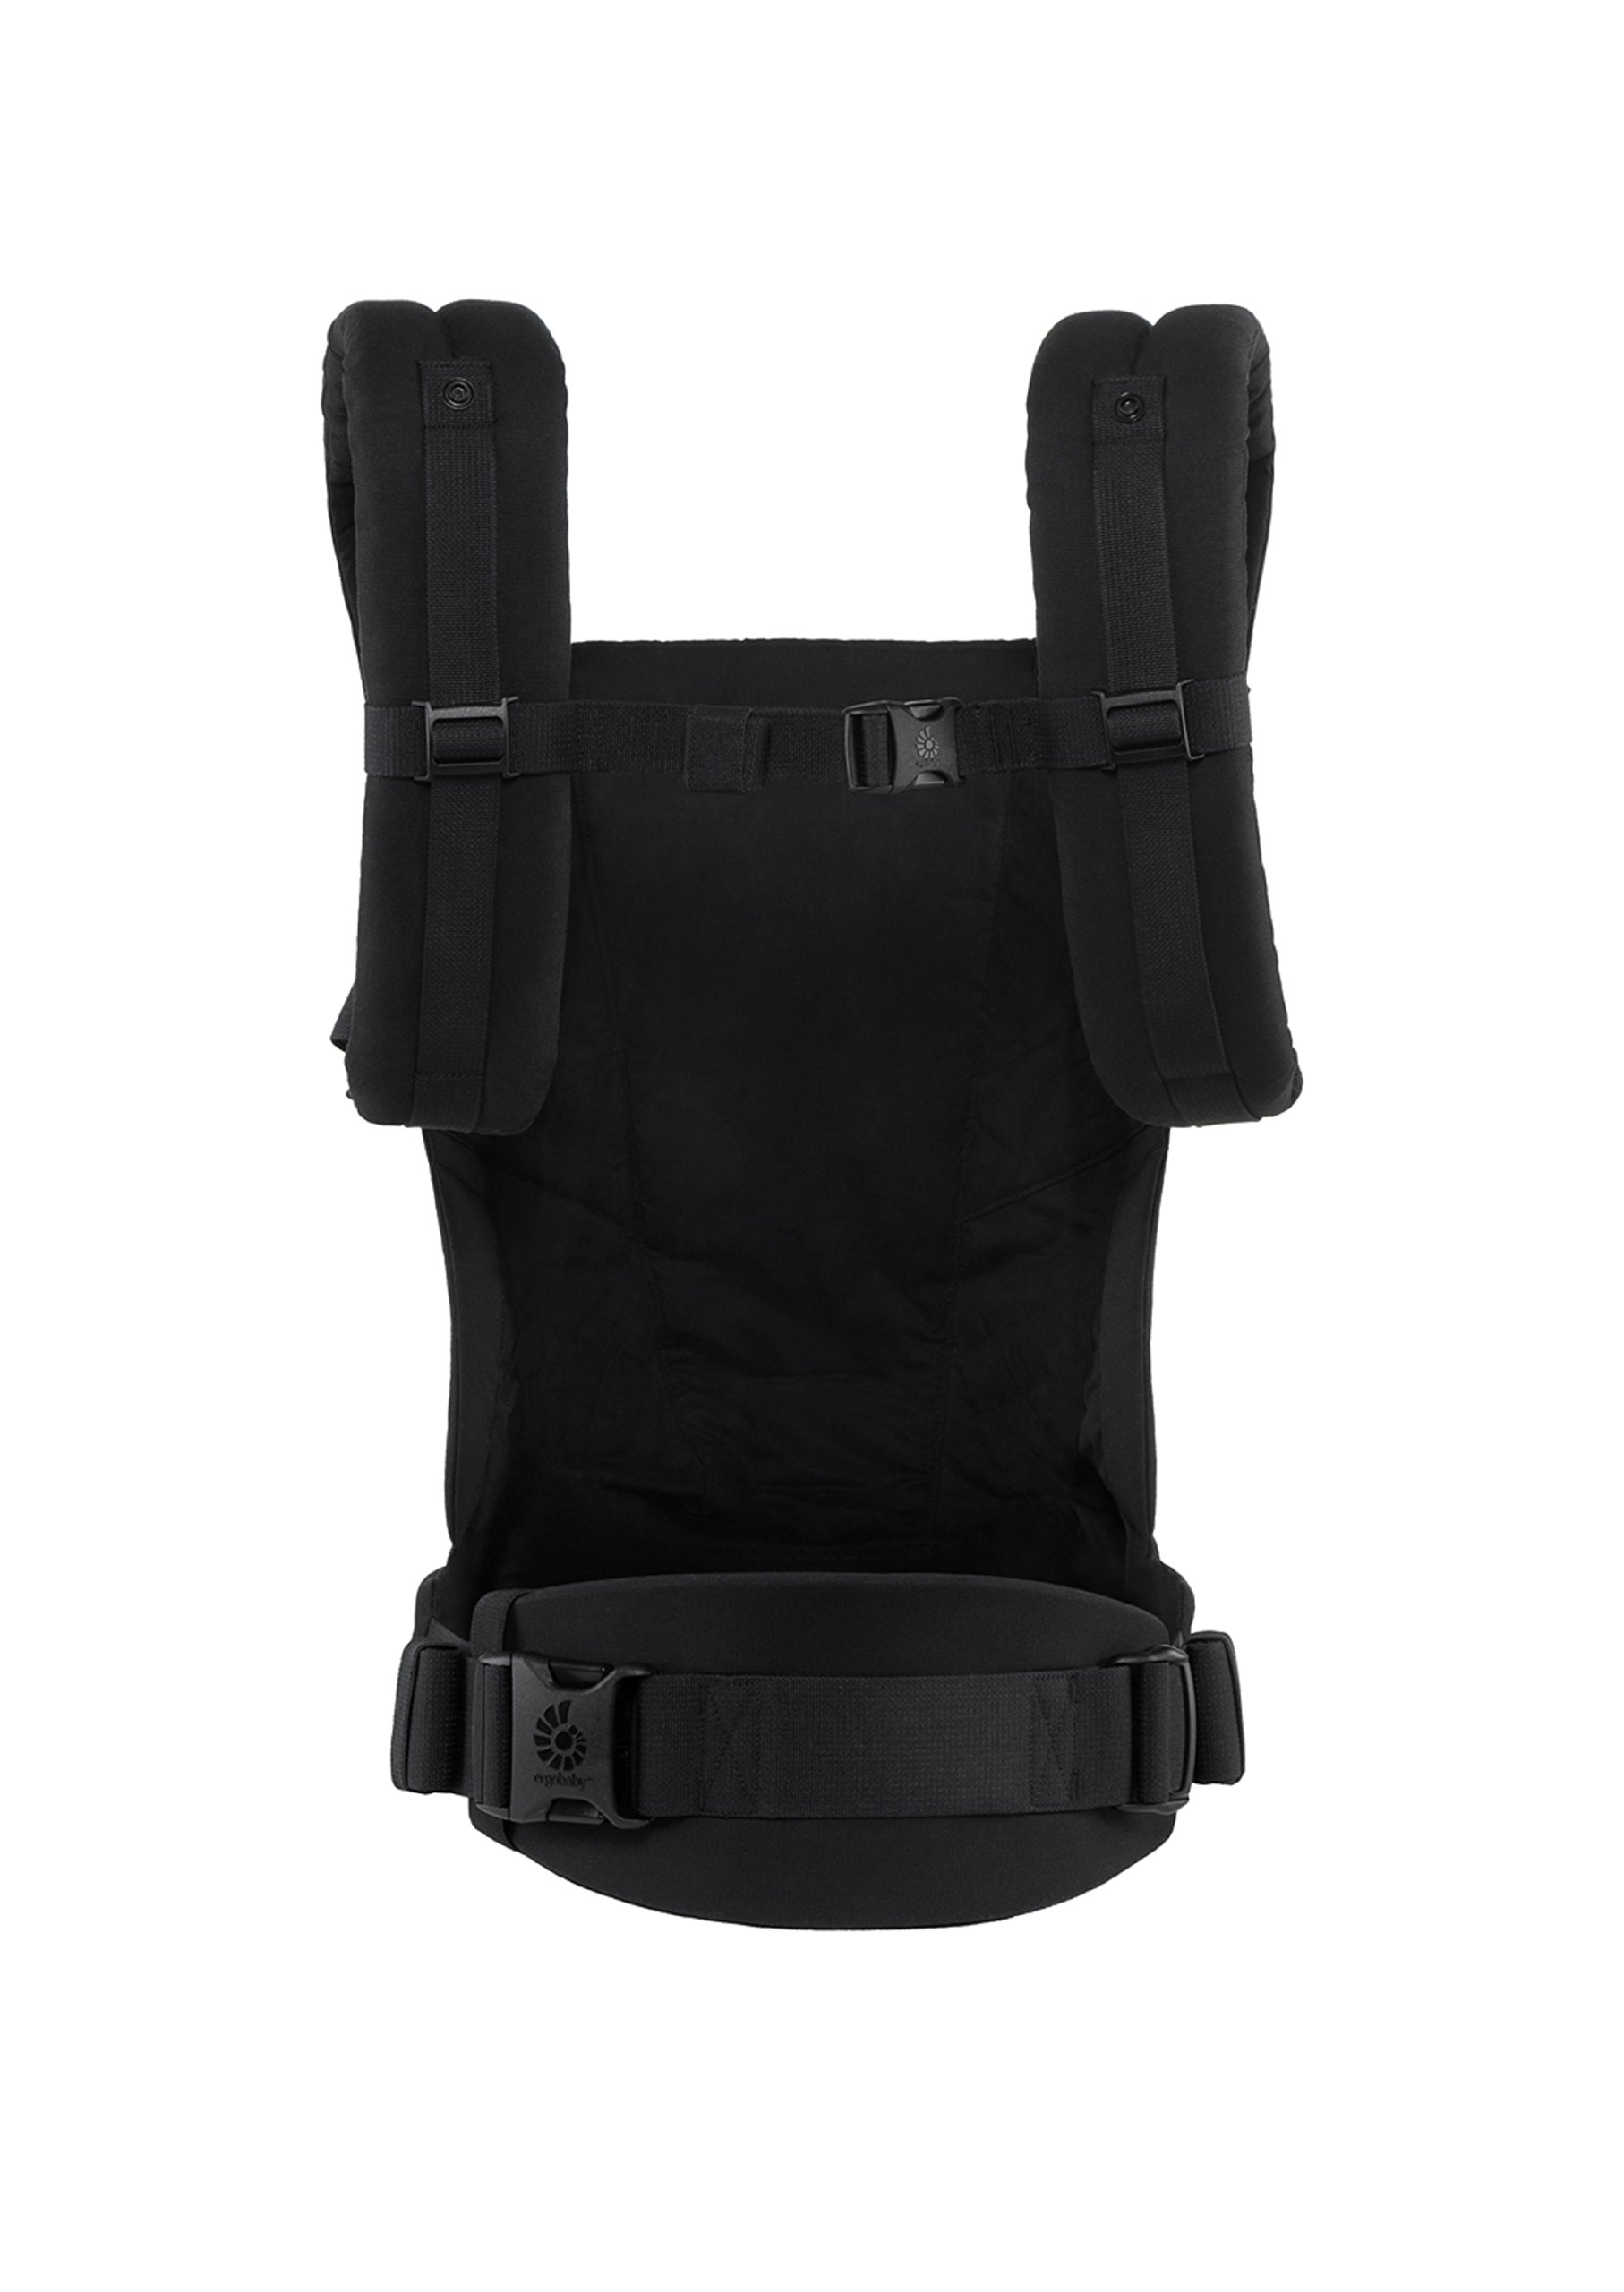 ErgoBaby Adapt Baby Carrier Black Ergobaby Adapt to Every Baby Easy. Adjustable. Newborn to toddler. 4